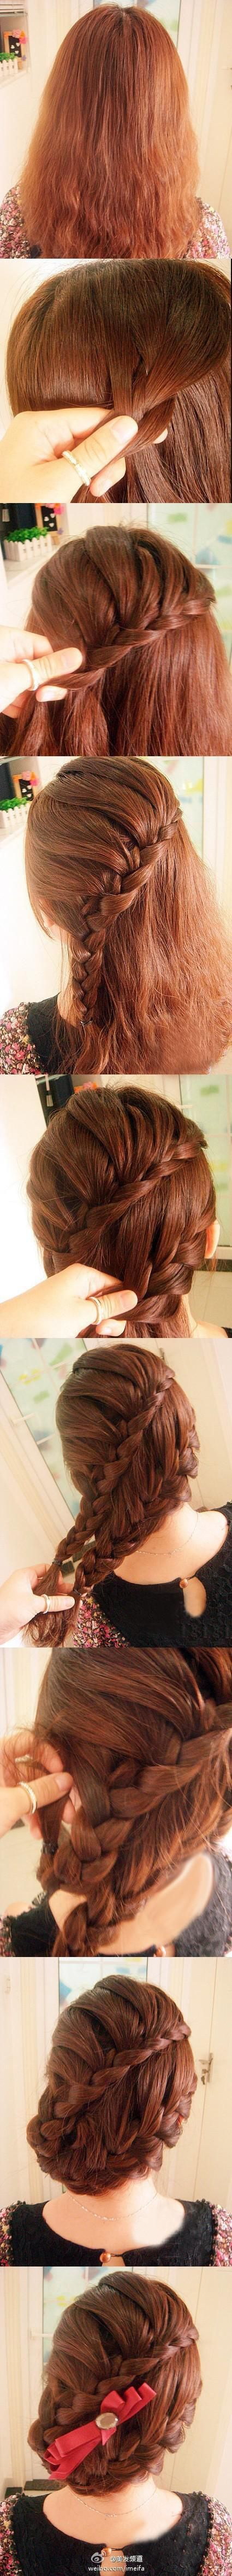 awesome!! Double-braid merged at the end